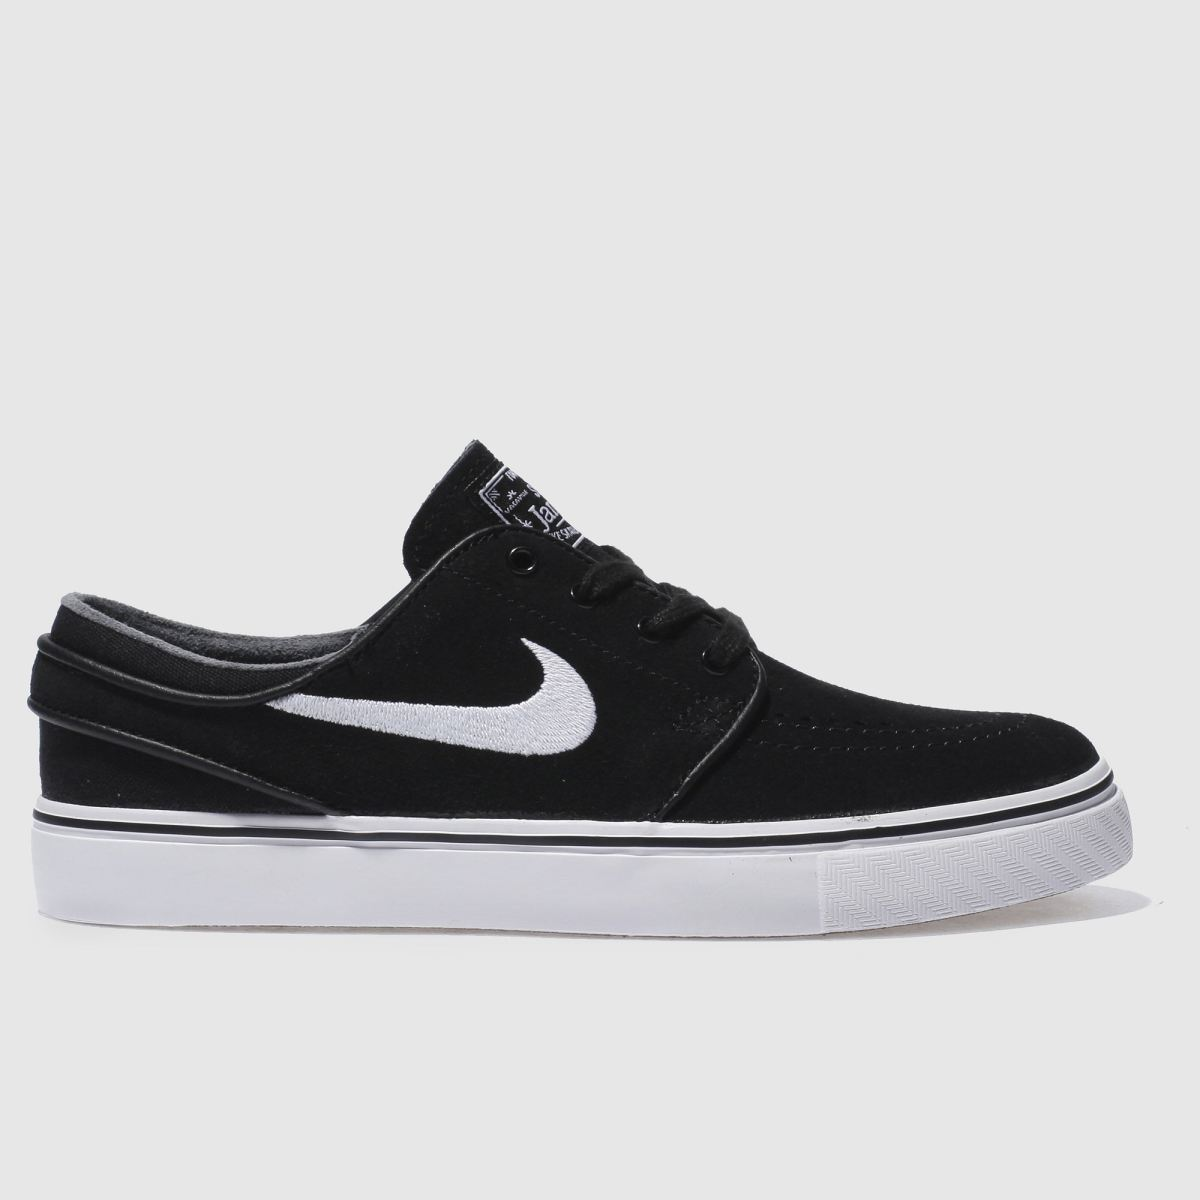 Nike Shoes Womens Black Zoom